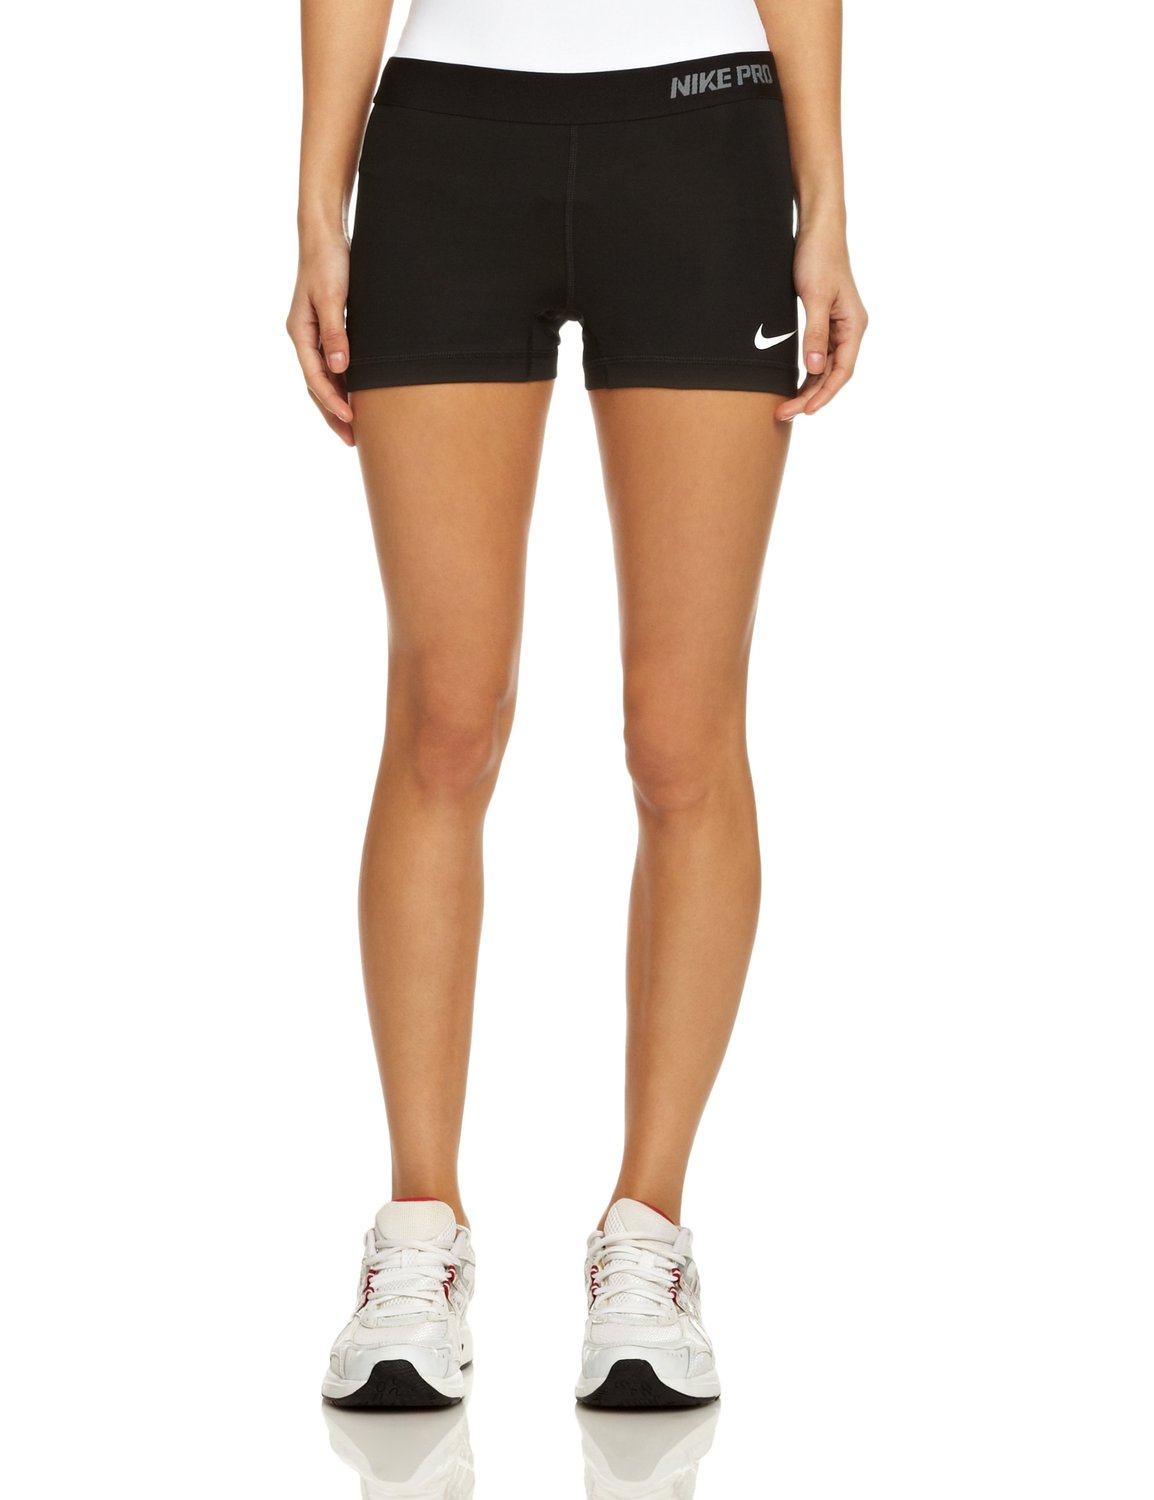 Amazon.com : Nike Lady Pro Core II 2.5 Inch Compression Shorts - X Small :  Cycling Compression Shorts : Clothing